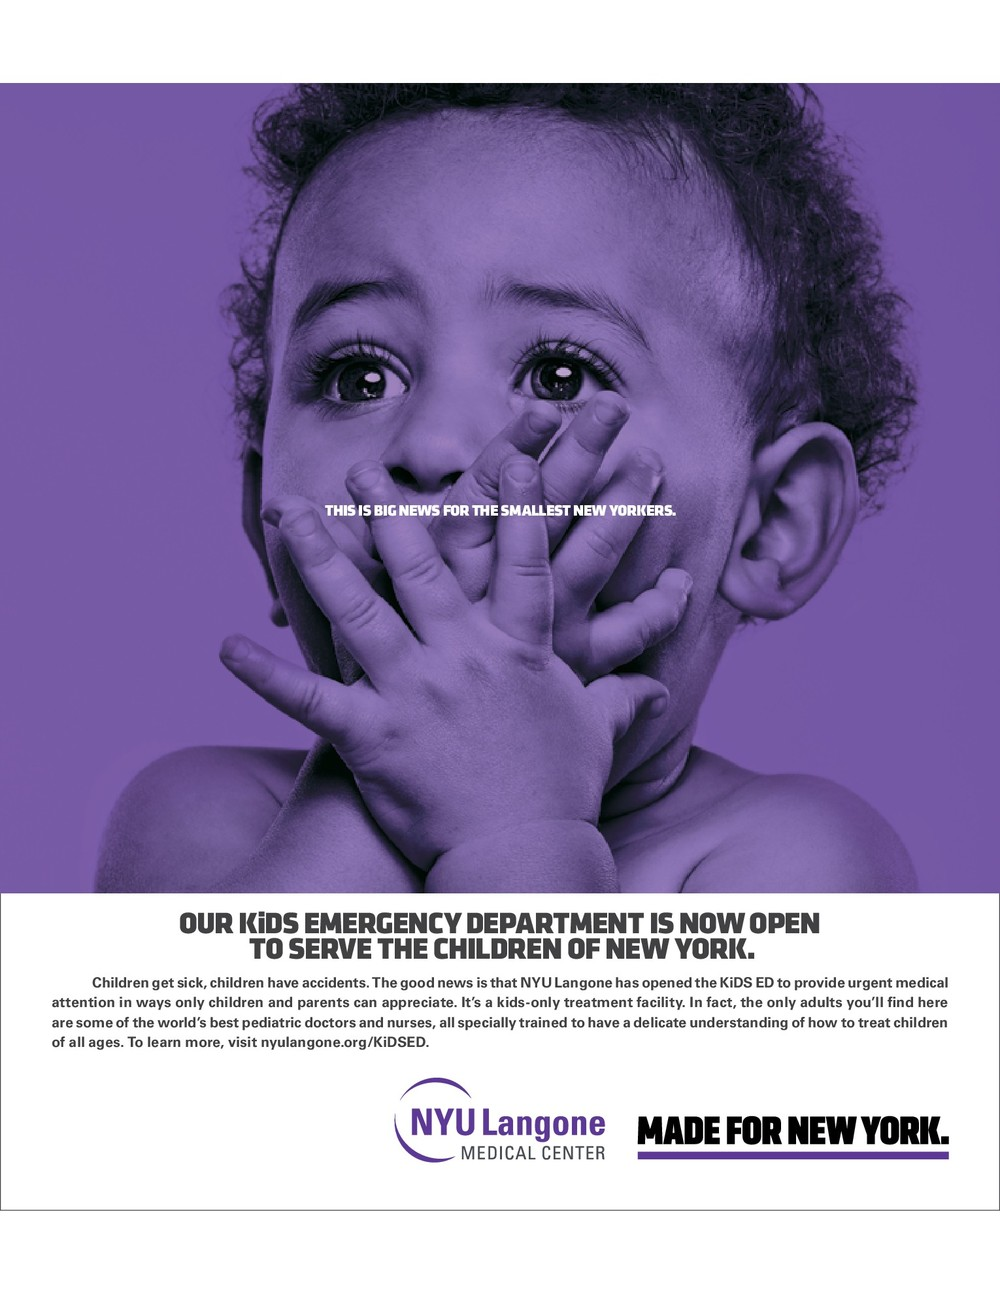 NYU Langone Medical Center Announcing a children's emergency department is a tricky business. We wanted to acknowledge the hard reality of a kid getting sick or having a serious accident. But not so the ad would be scary or grim. Here, a judicious dollop of adorable and cute really worked. And the huge image of the baby put the body copy describing NYU Langone's approach to children's urgent care into perspective. Yes, this a clinical place full of doctors and state-of-the-art medical equipment, but it also appreciates the very special needs of its patients and their families.